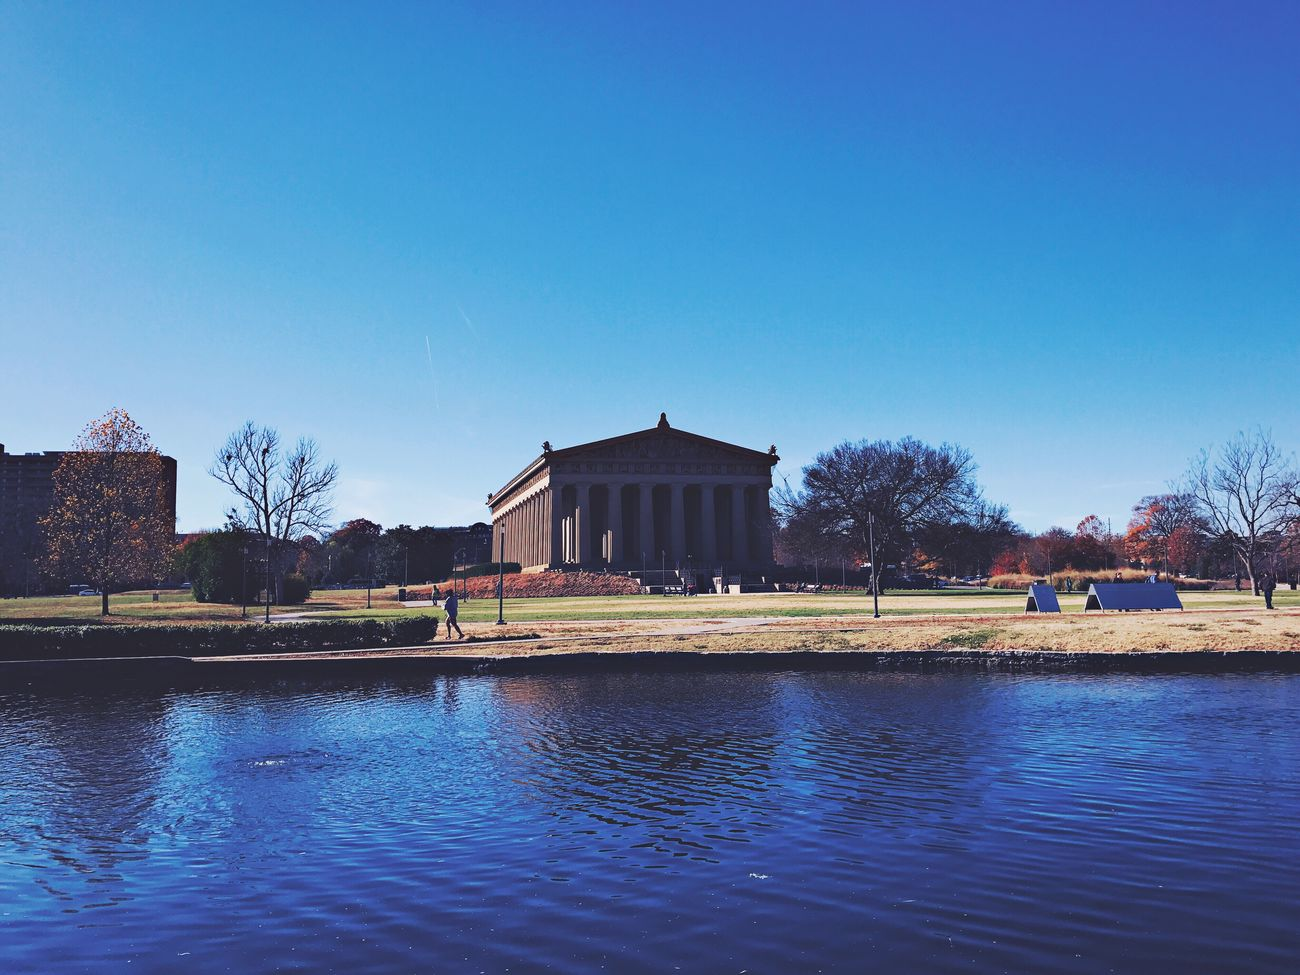 Clear Sky Architecture Building Exterior Built Structure Water Reflection Blue Waterfront No People Nature Tree River Outdoors Day Travel Destinations Sky Pavilion Parthenon Nashville